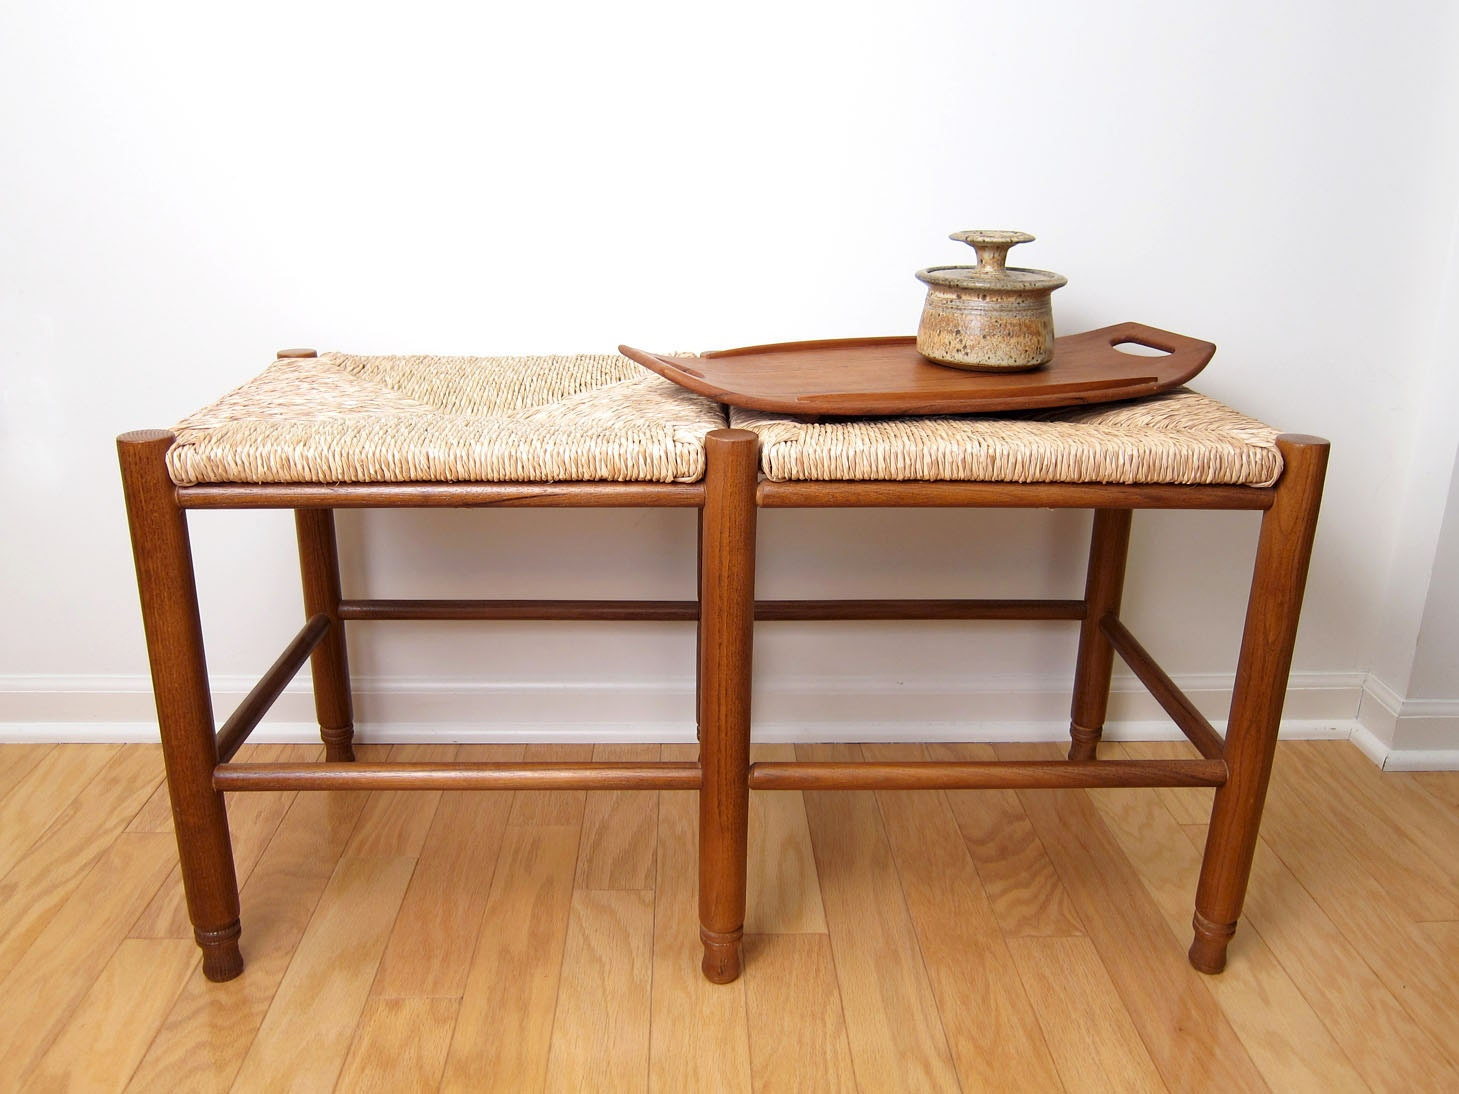 Vintage Occasional Bench Rush Seat Bedroom Bench Woven